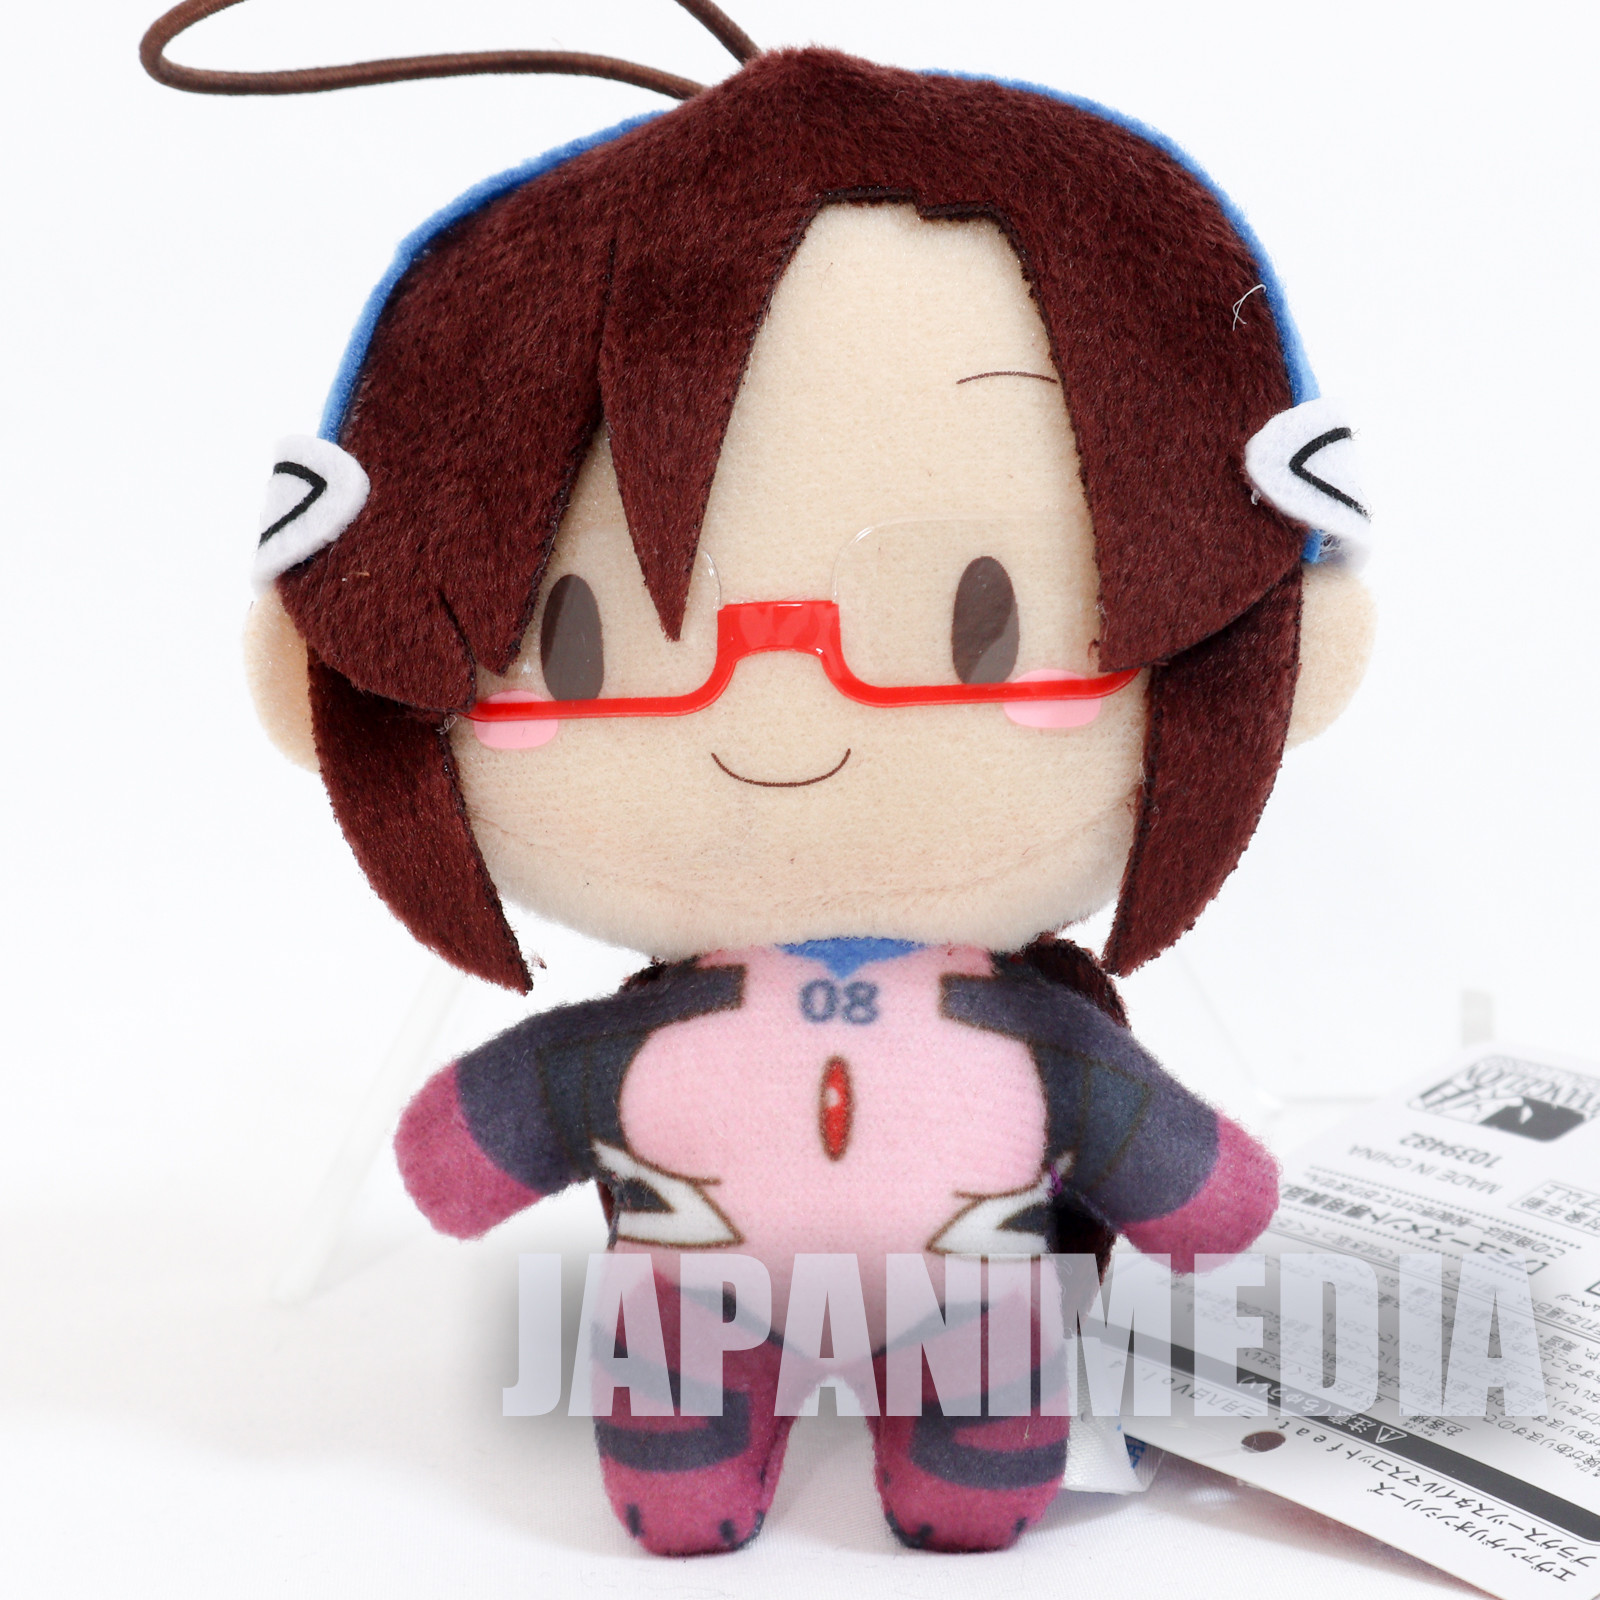 Evangelion Mari Illustrious Plugsuit Mini Plush Doll SEGA JAPAN ANIME MANGA